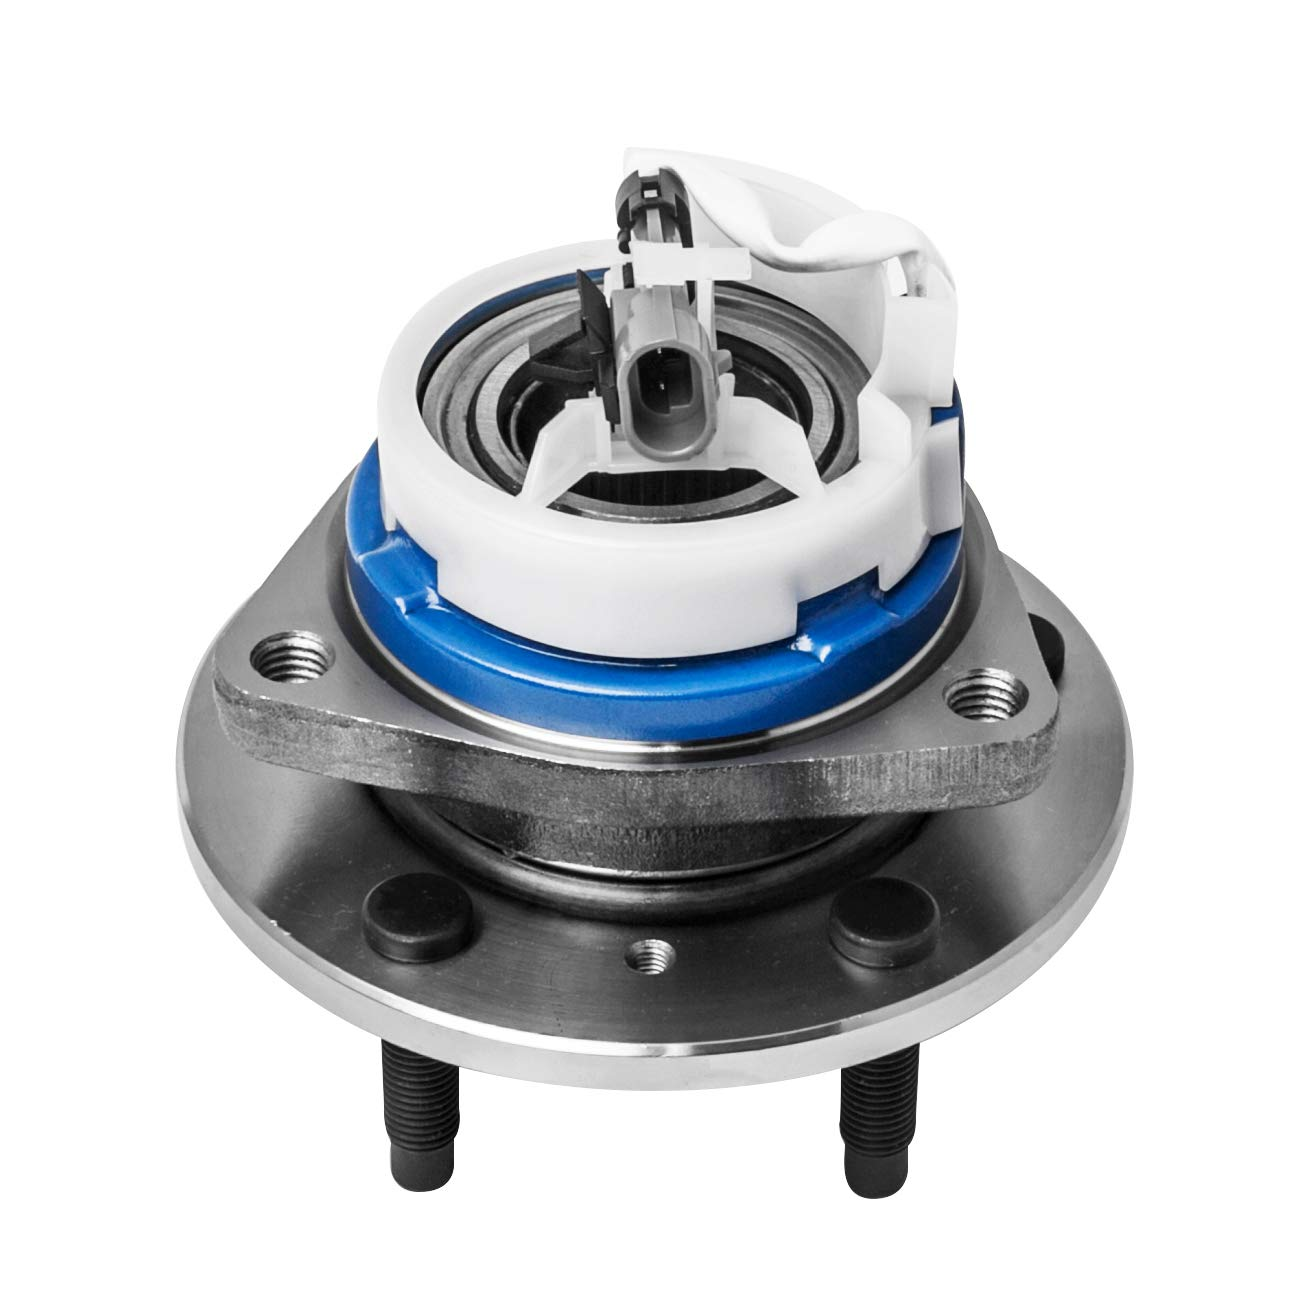 513199 TUCAREST 513179 Front Rear Wheel Bearing and Hub Assembly Compatible With Buick Century Cadillac Deville DTS Chevy Impala Olds Aurora Pontiac Aztek Bonneville Saturn Relay 5 Lug W//ABS